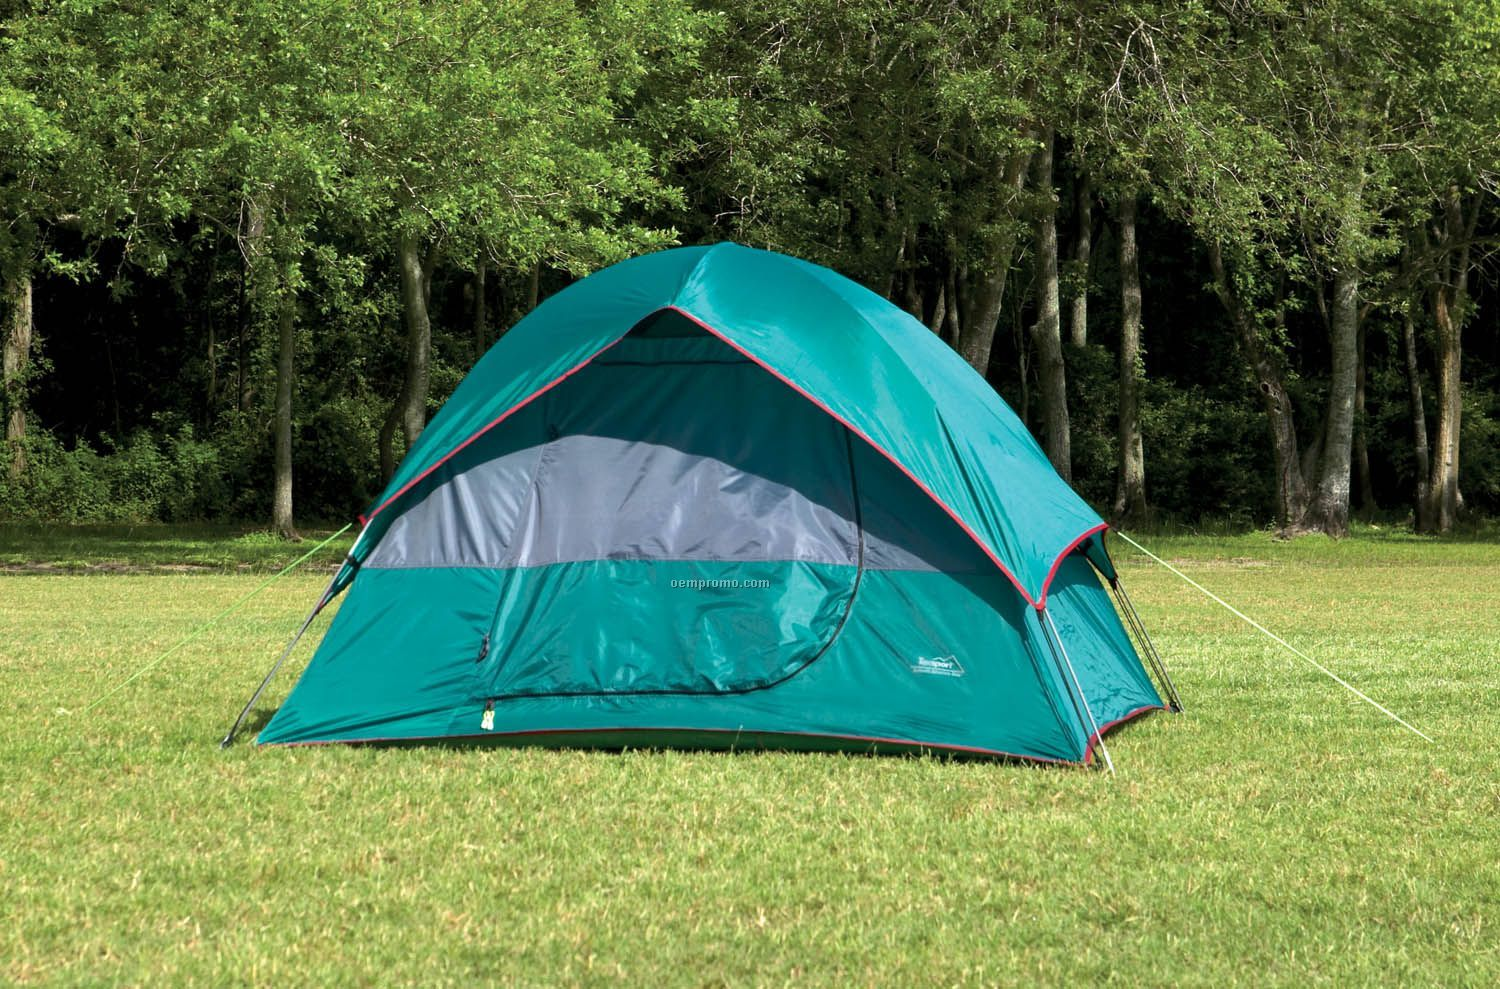 Texsport Hastings Square Dome Tent & Texsport Hastings Square Dome TentChina Wholesale Texsport ...